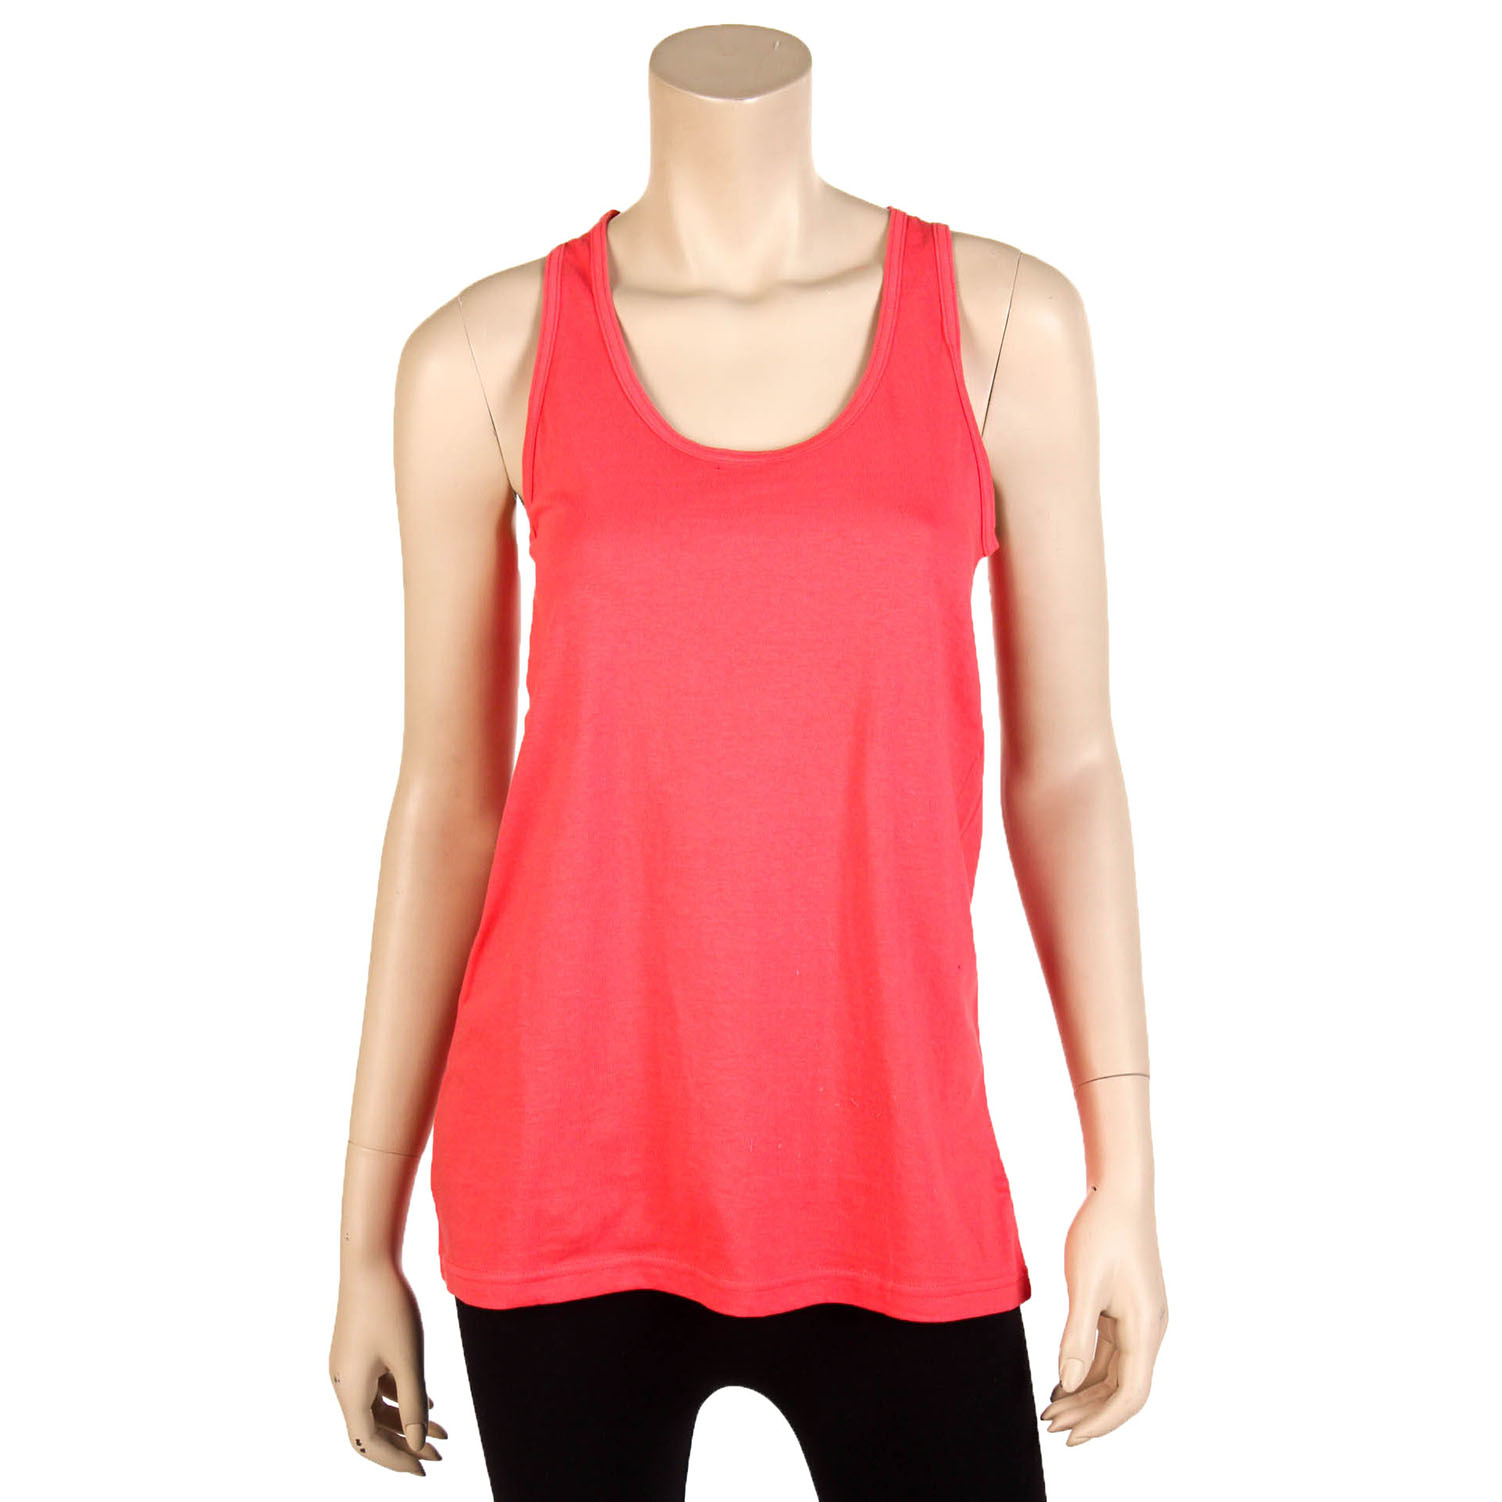 Womens Loose Fit Tank Top Scalloped Trim 100/% Cotton Relaxed Flowy Basic S M L